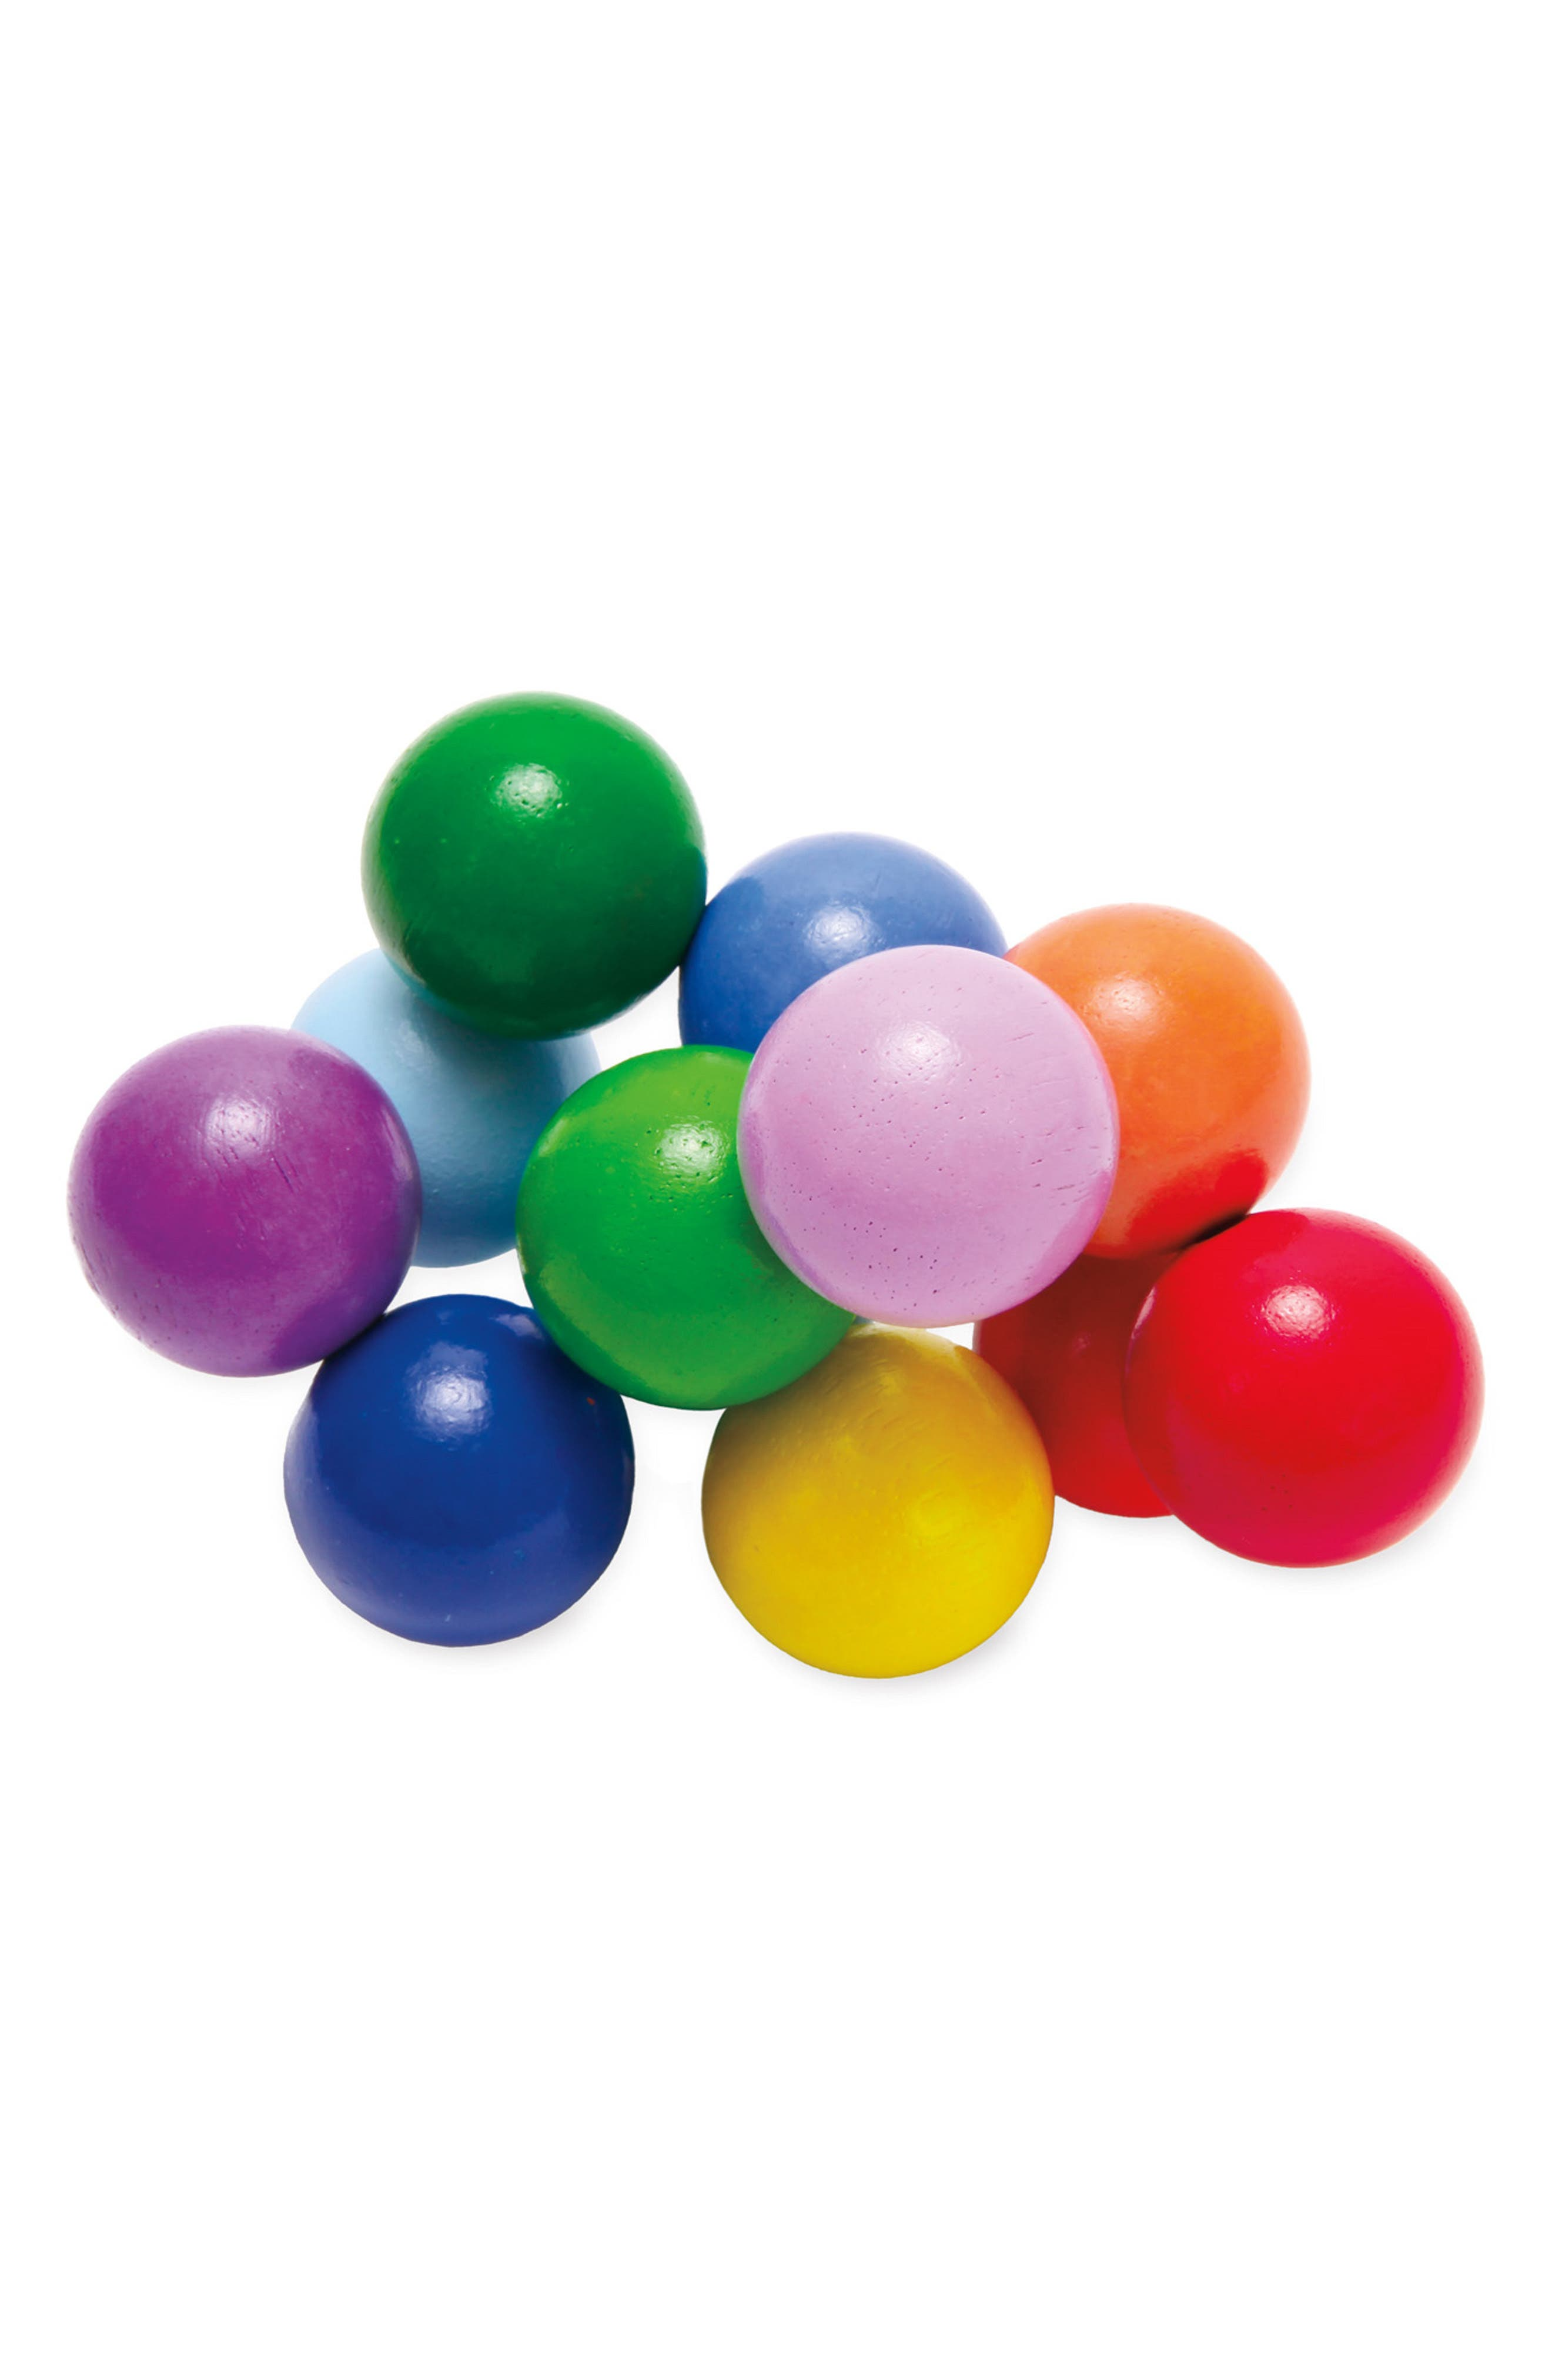 Classic Wooden Bead Cluster Toy,                             Main thumbnail 1, color,                             000